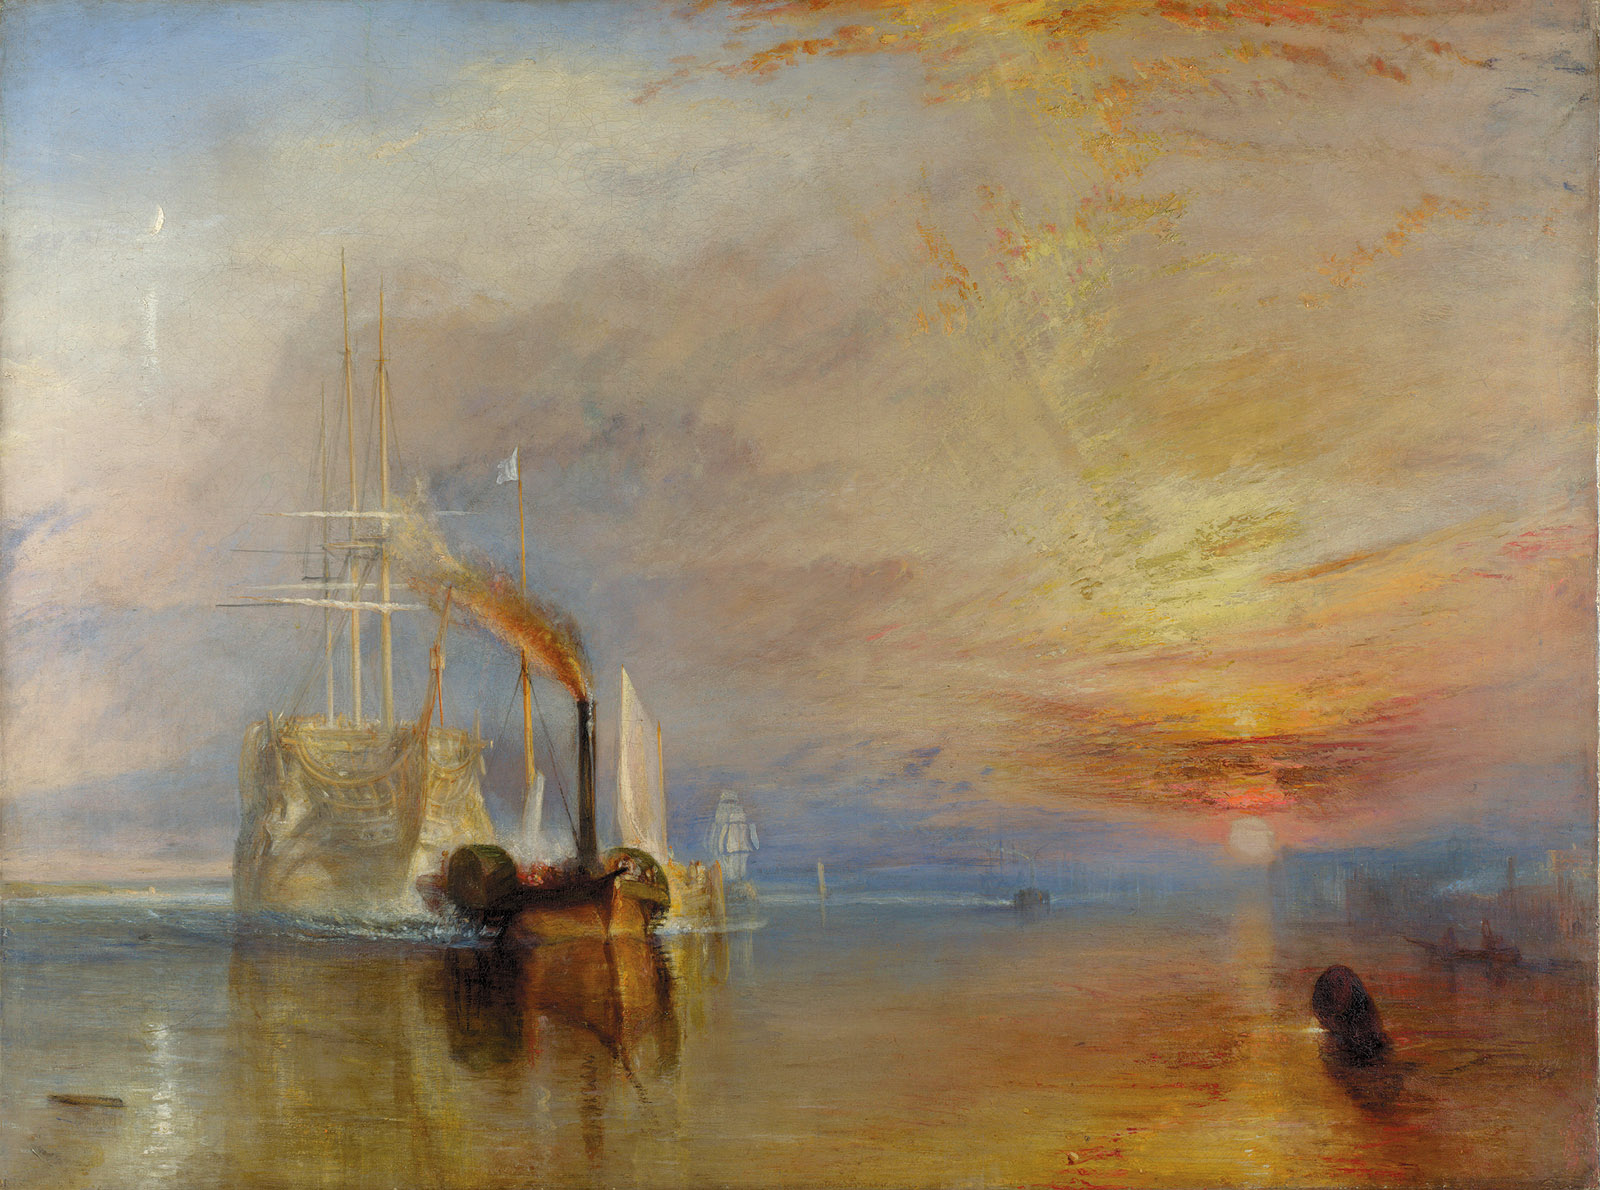 Turner The Extraordinary Life and Momentous Times of J.M.W Turner